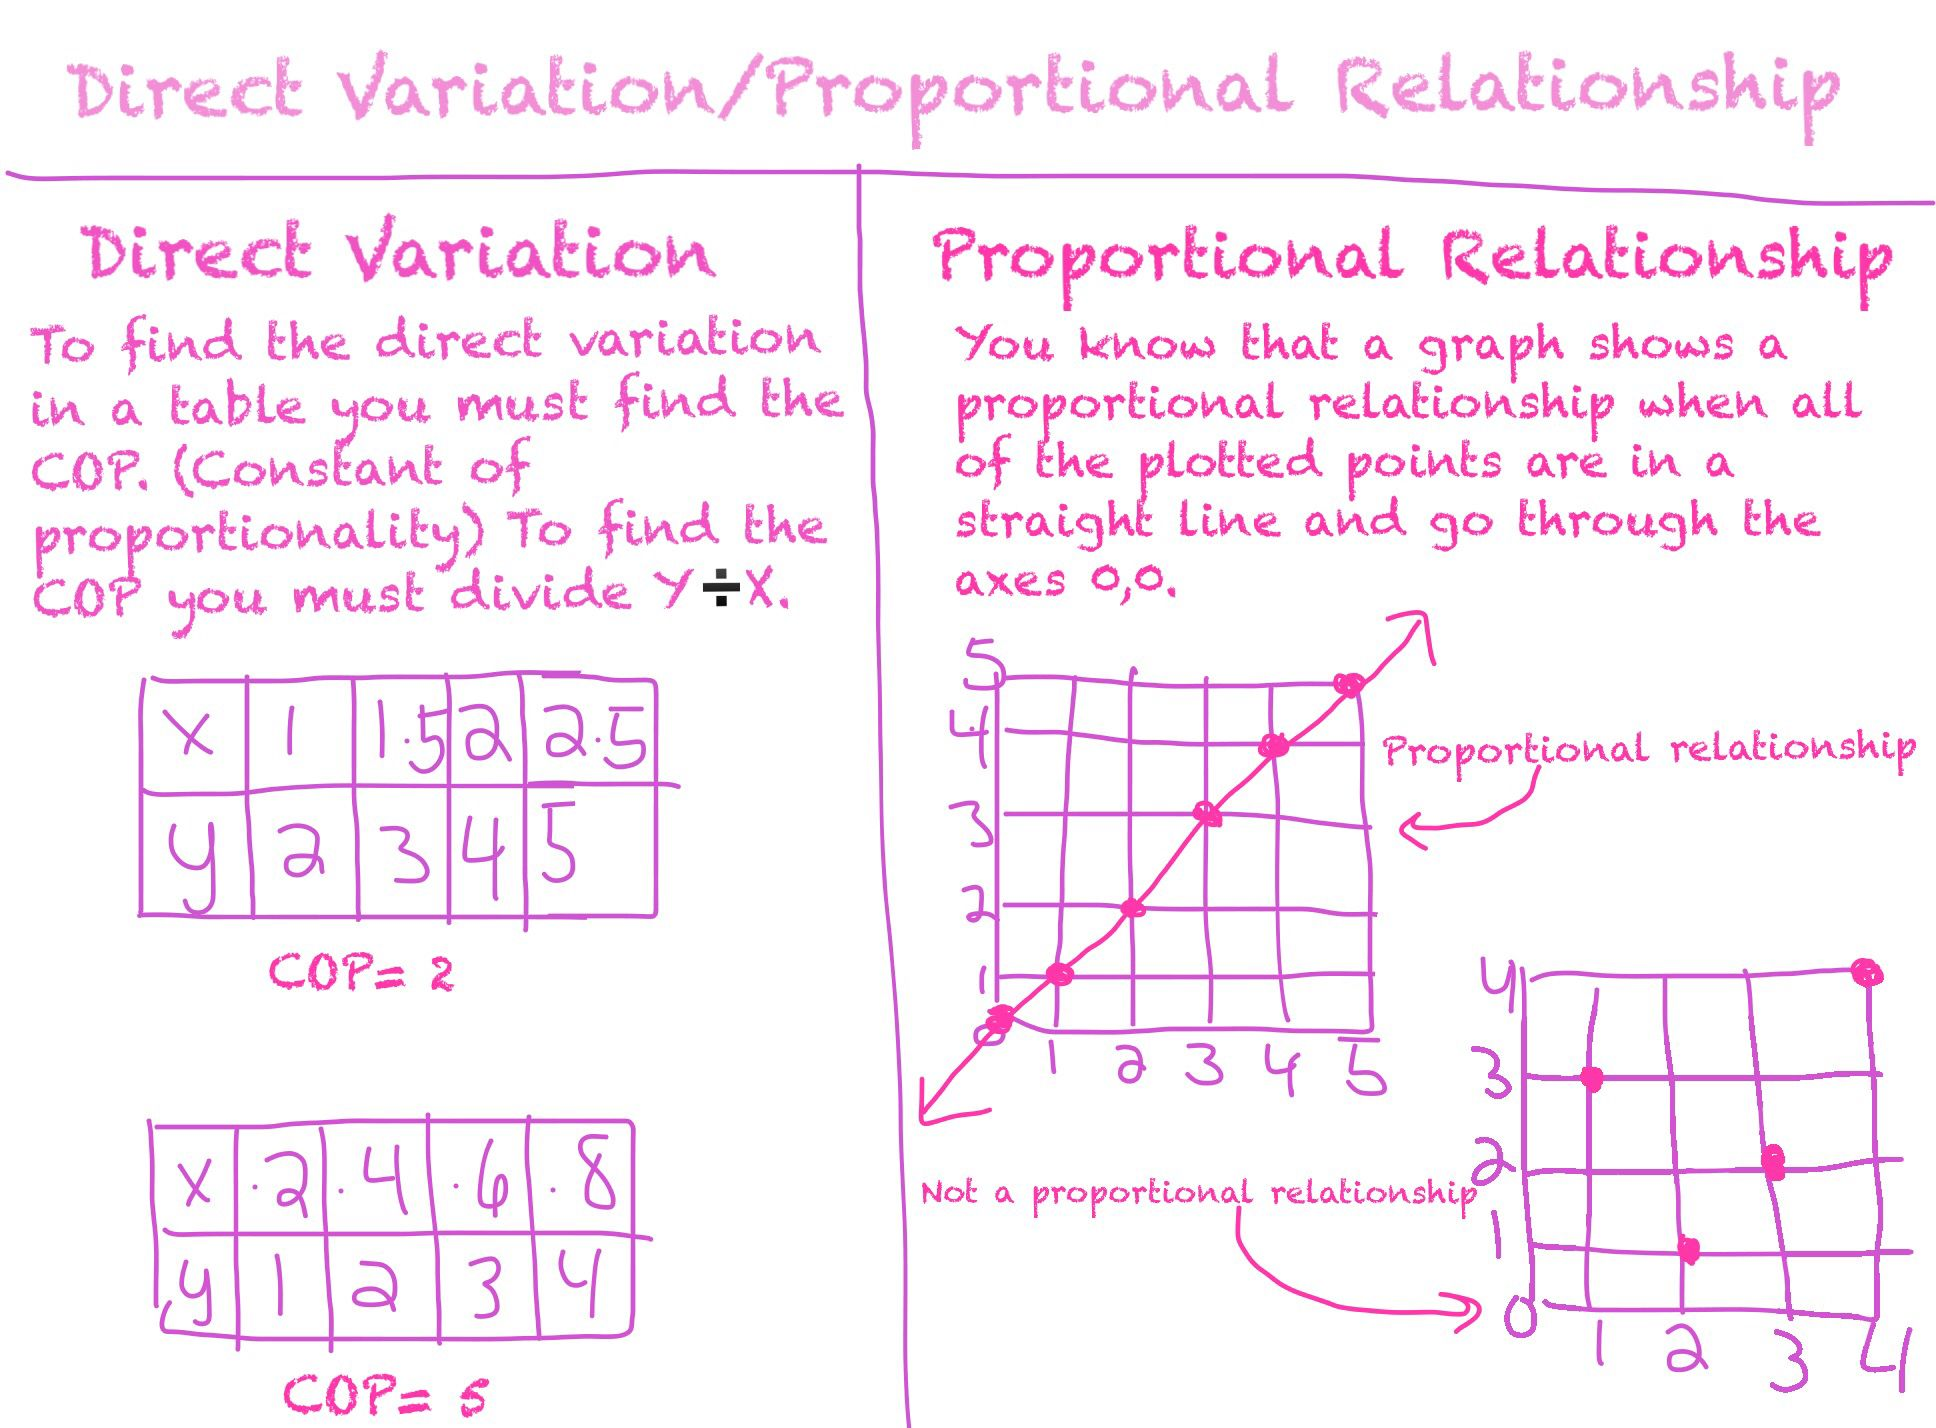 small resolution of Direct Variation/Proportional Relationship   Direct variation